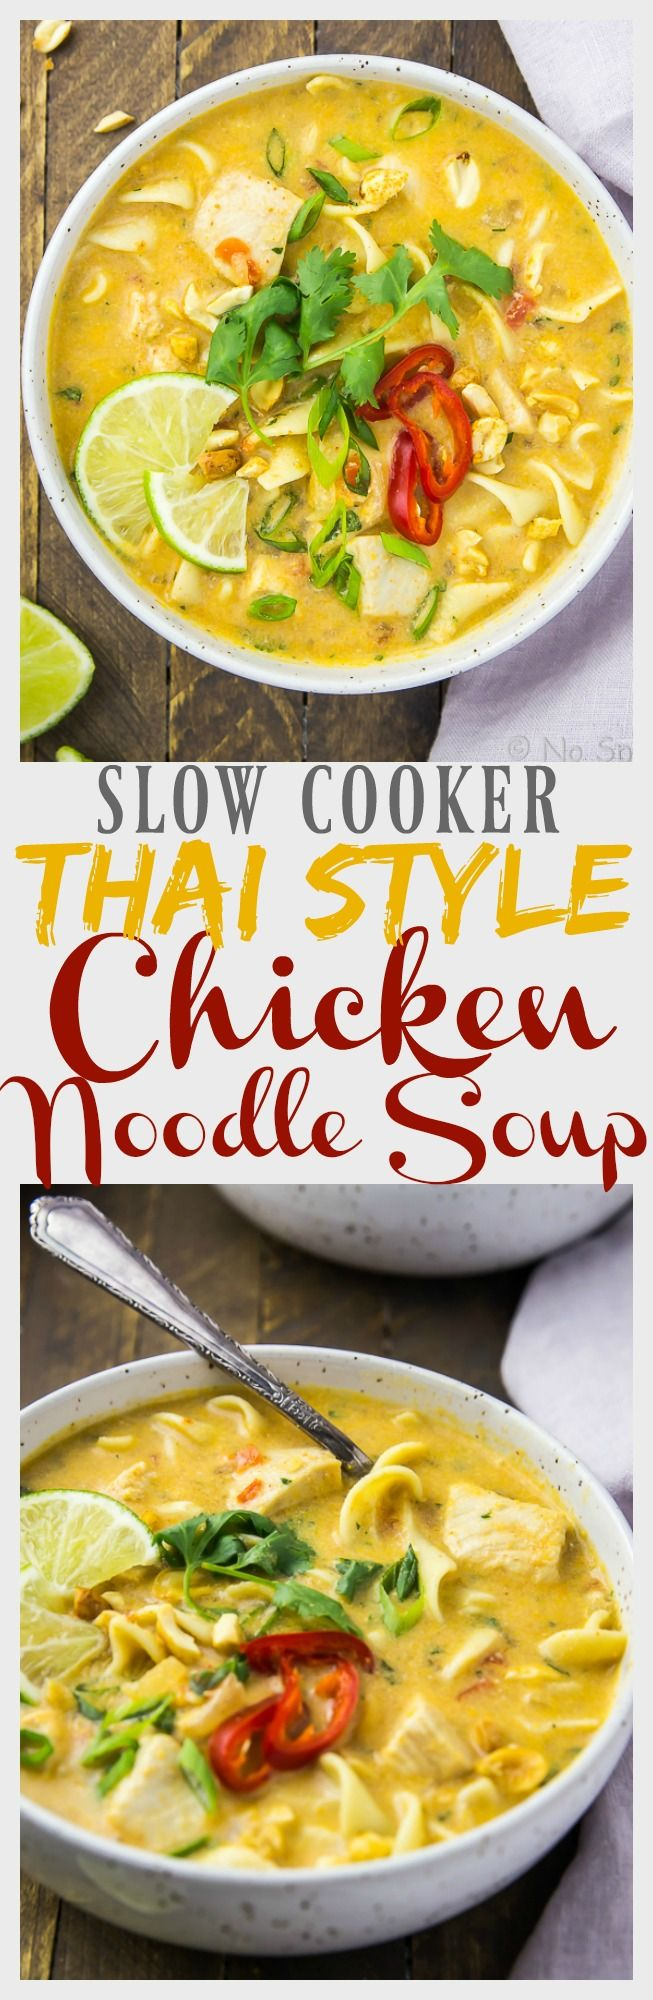 Slow Cooker Thai Style Chicken Noodle Soup.  Classic chicken noodle soup meets Thai chicken curry in this soup!